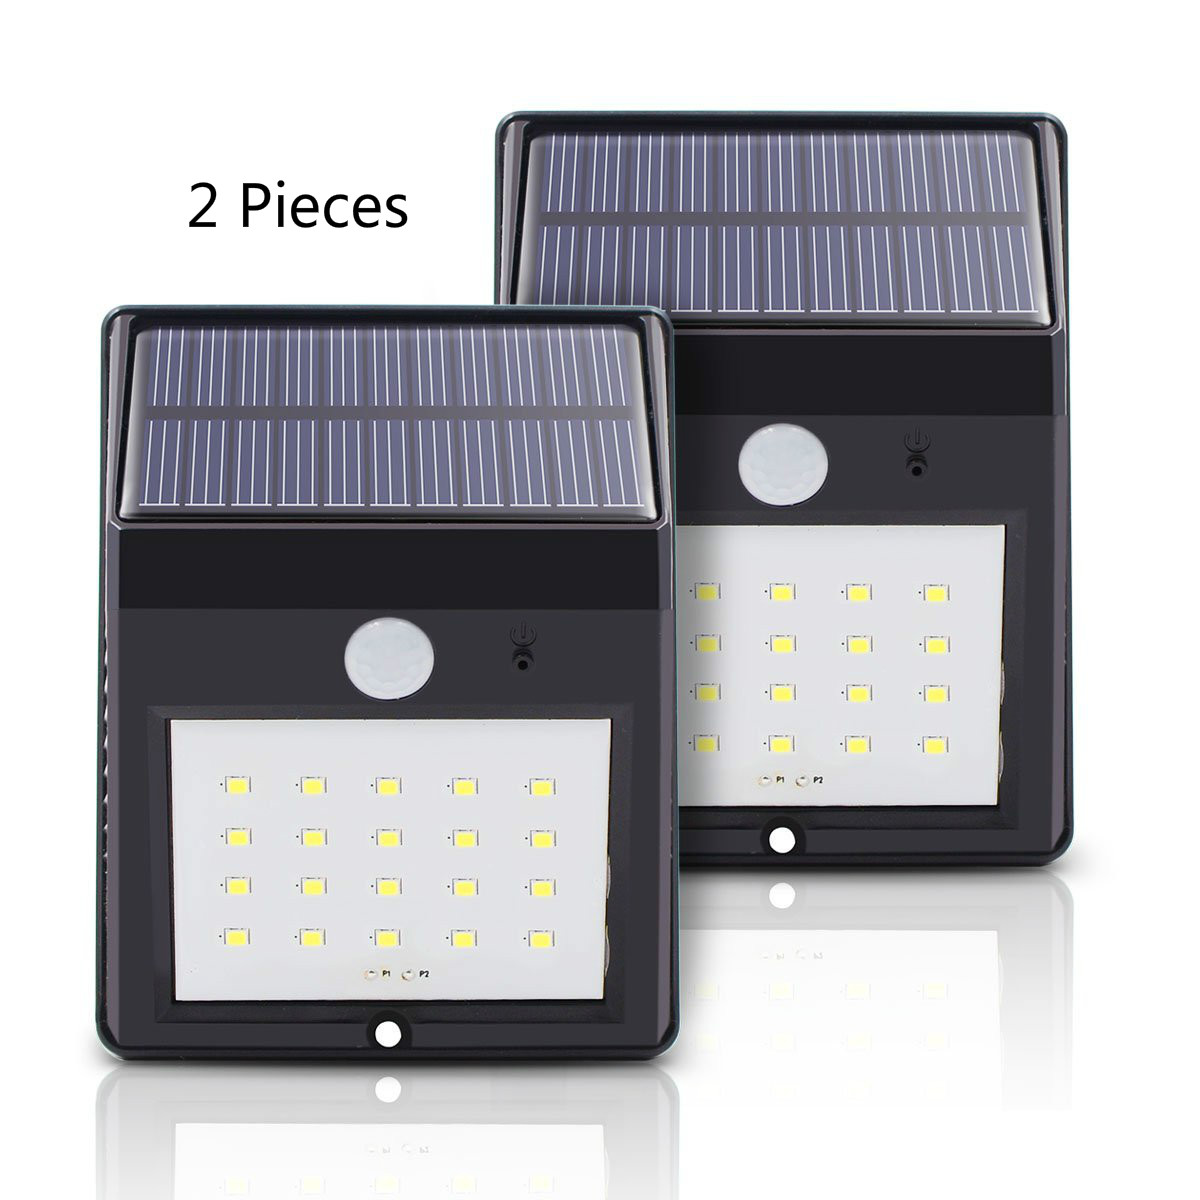 Solar Power Pir Lamp Outdoor 20 LEDs Motion Sensor Outdoor Led Solar Panel Lights Waterproof Garden LED Lighting 2 Pieces waterproof led solar light energy saving solar lamp with pir motion sensor 8 16 20 leds solar garden lights for outdoor lighting